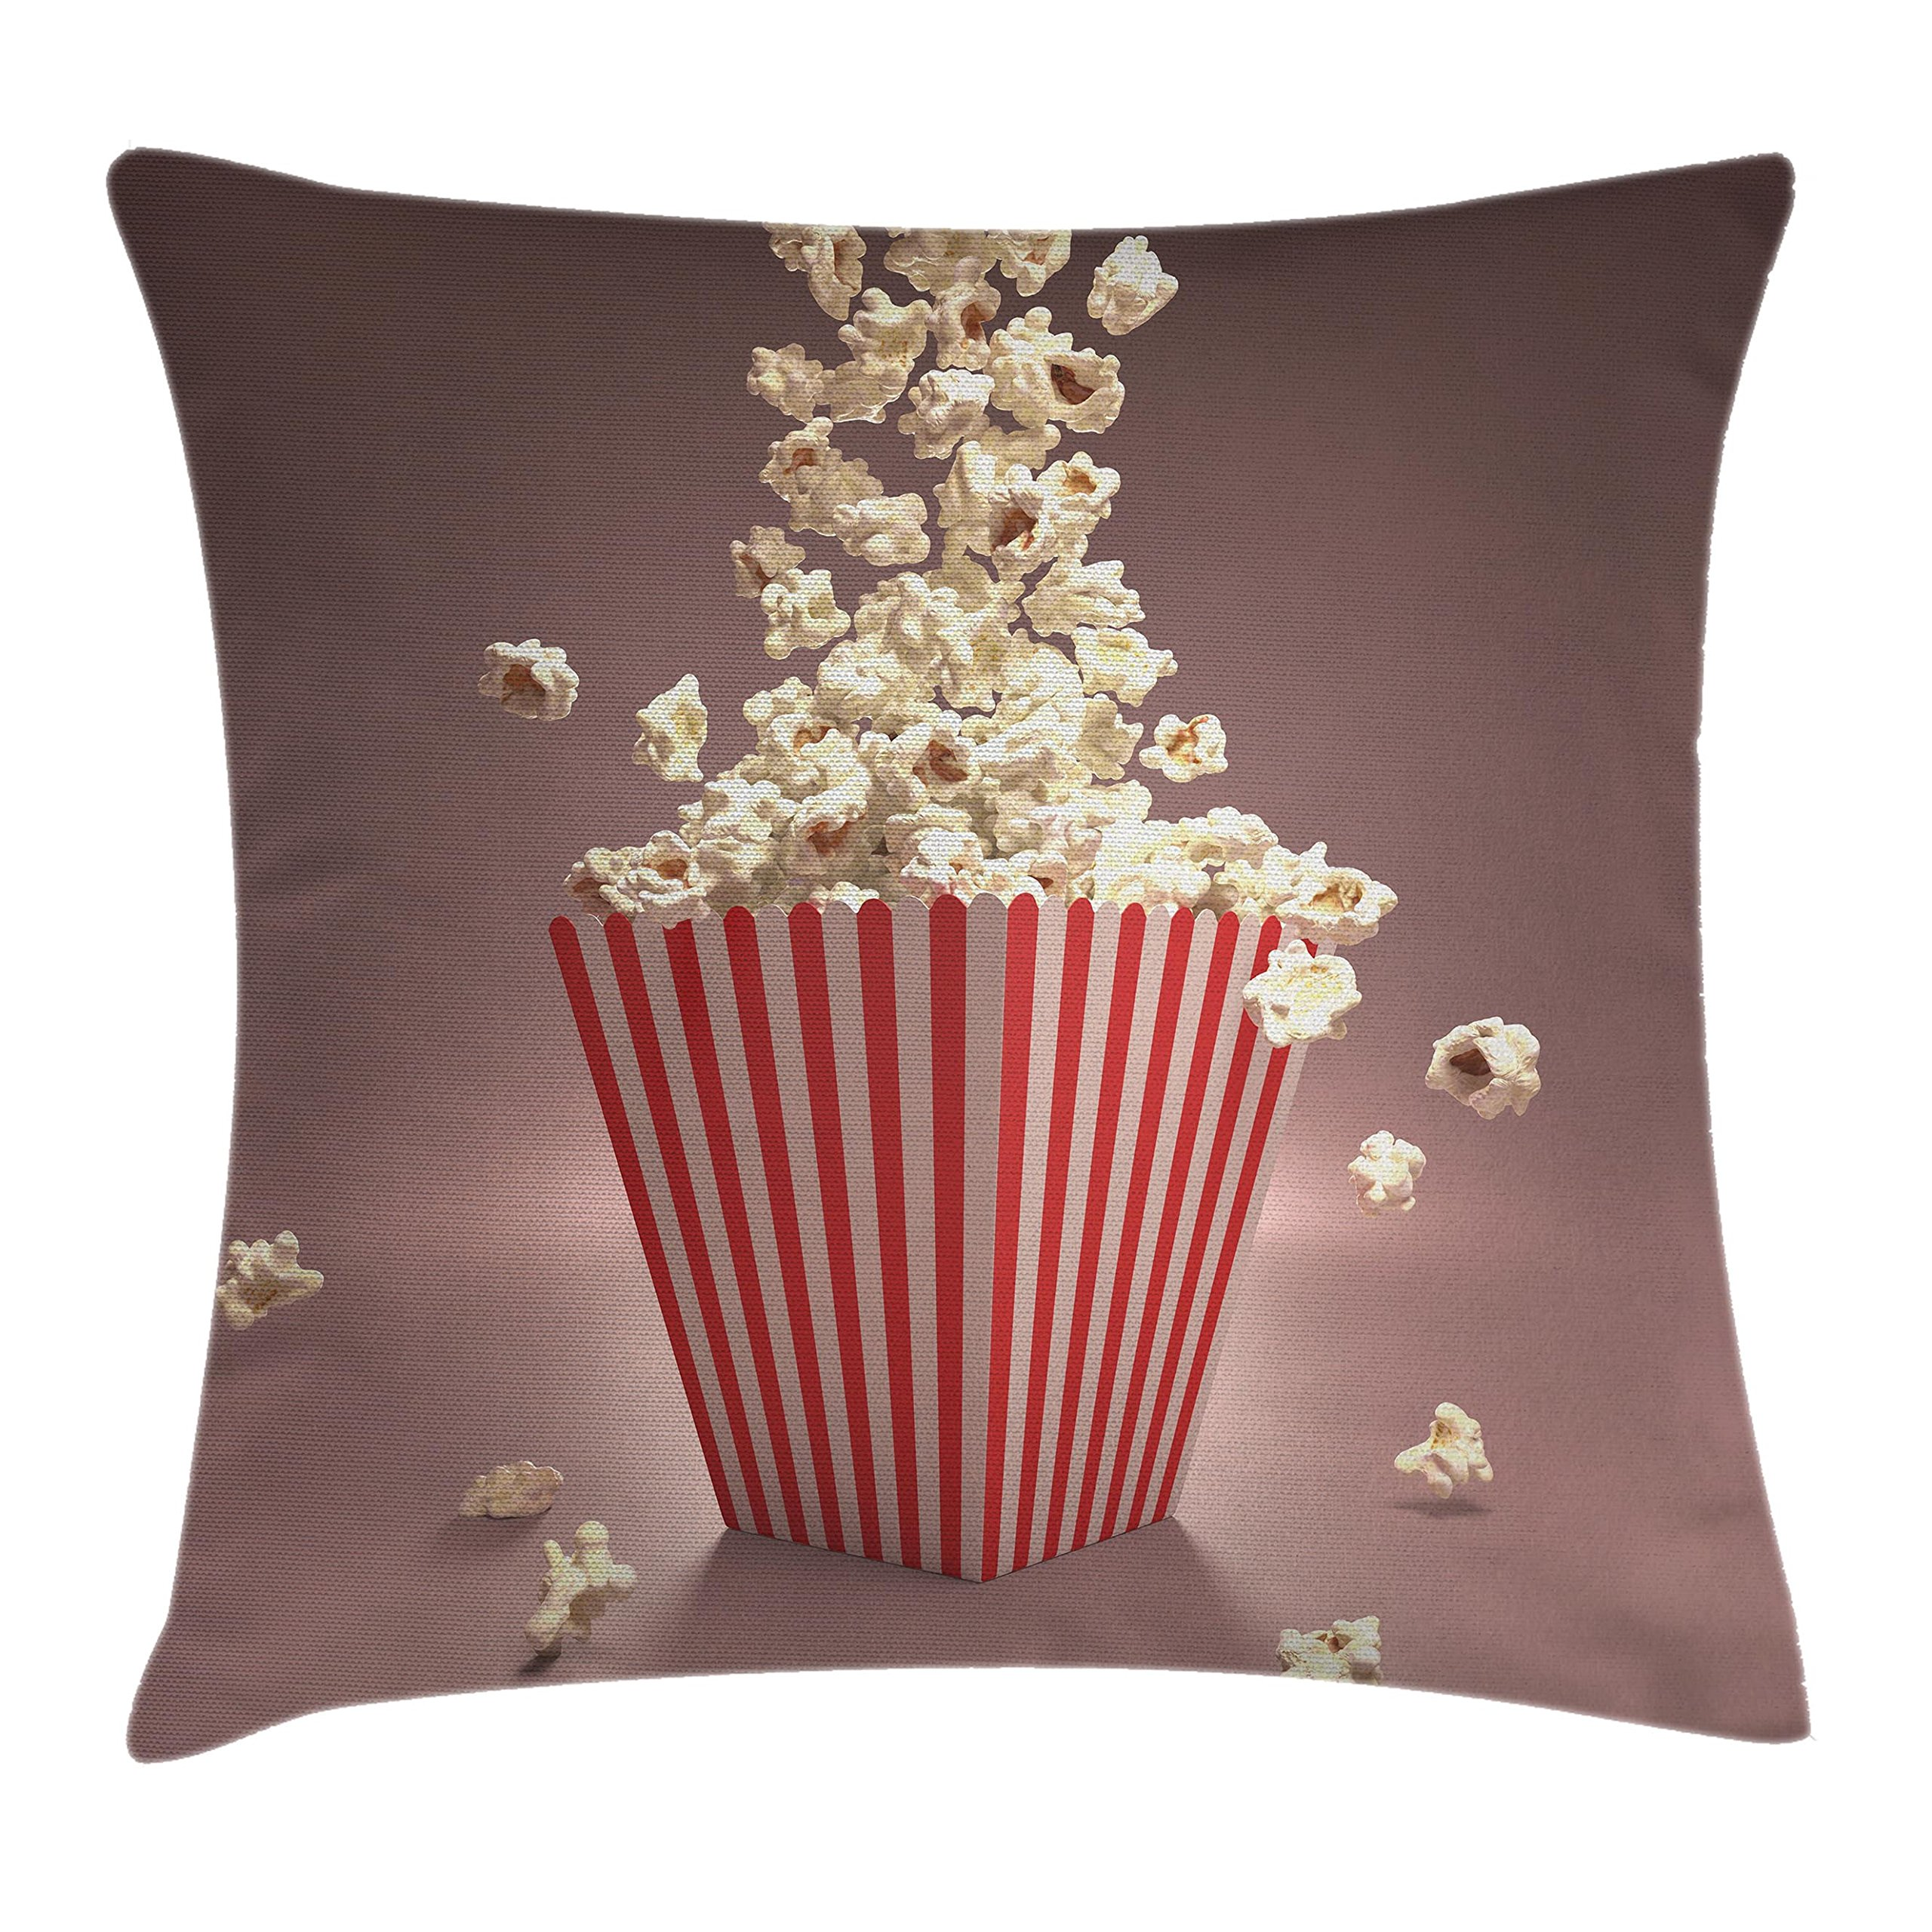 Ambesonne Retro Throw Pillow Cushion Cover, Retro Style Popcorn Art Image Cinema Movie Theater Theme in Classical Display, Decorative Square Accent Pillow Case, 20 X 20 Inches, Light Red White